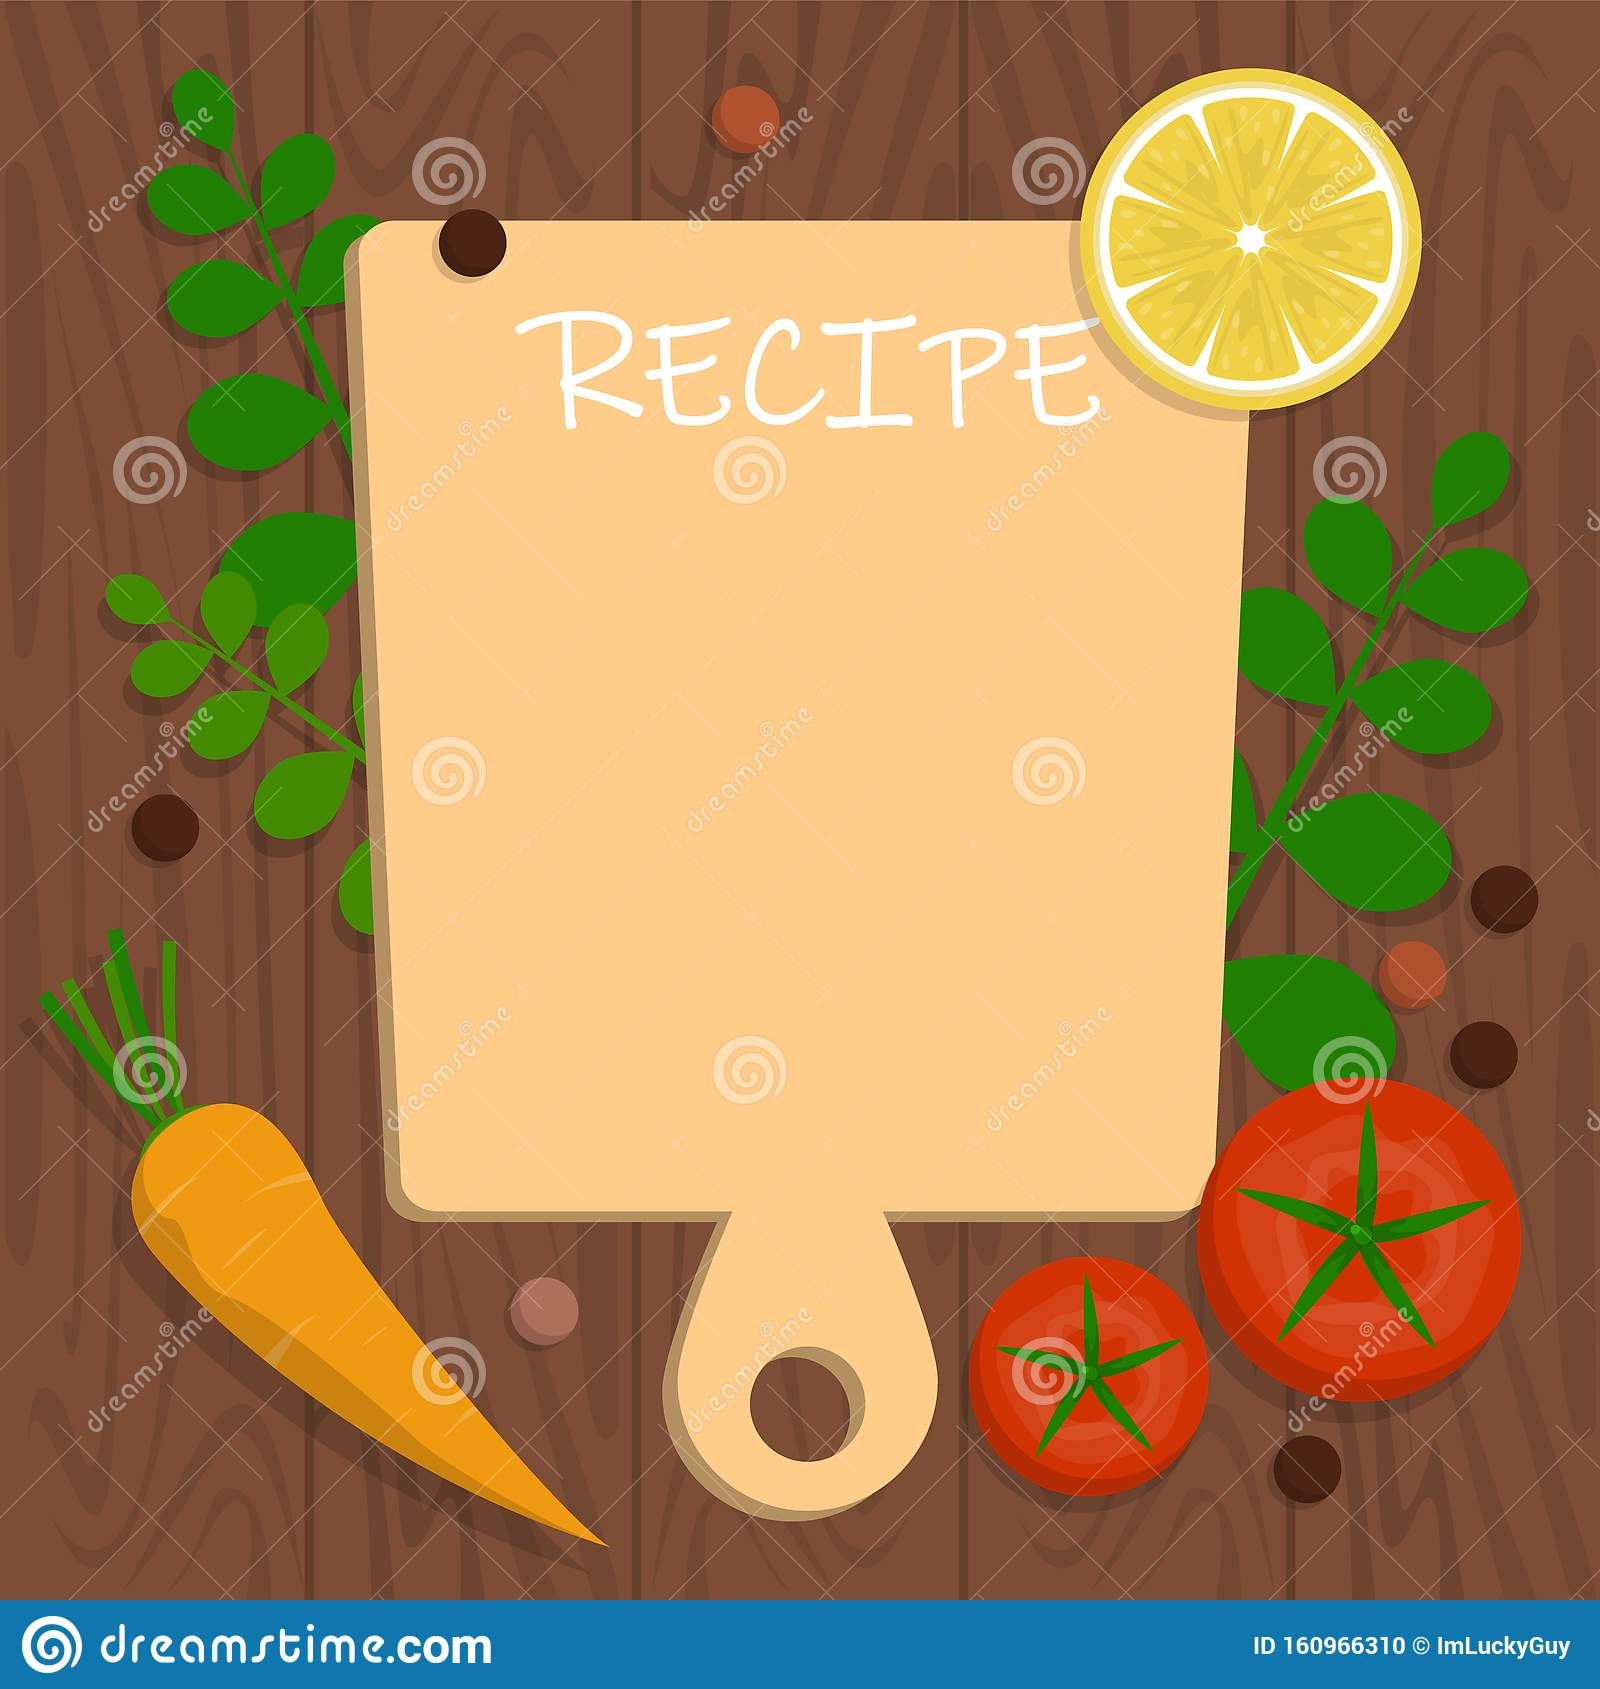 Recipe Banner Template Blank Space For The Text Cooking Idea Stock Illustration Illustration Of Block Cartoon 160966310